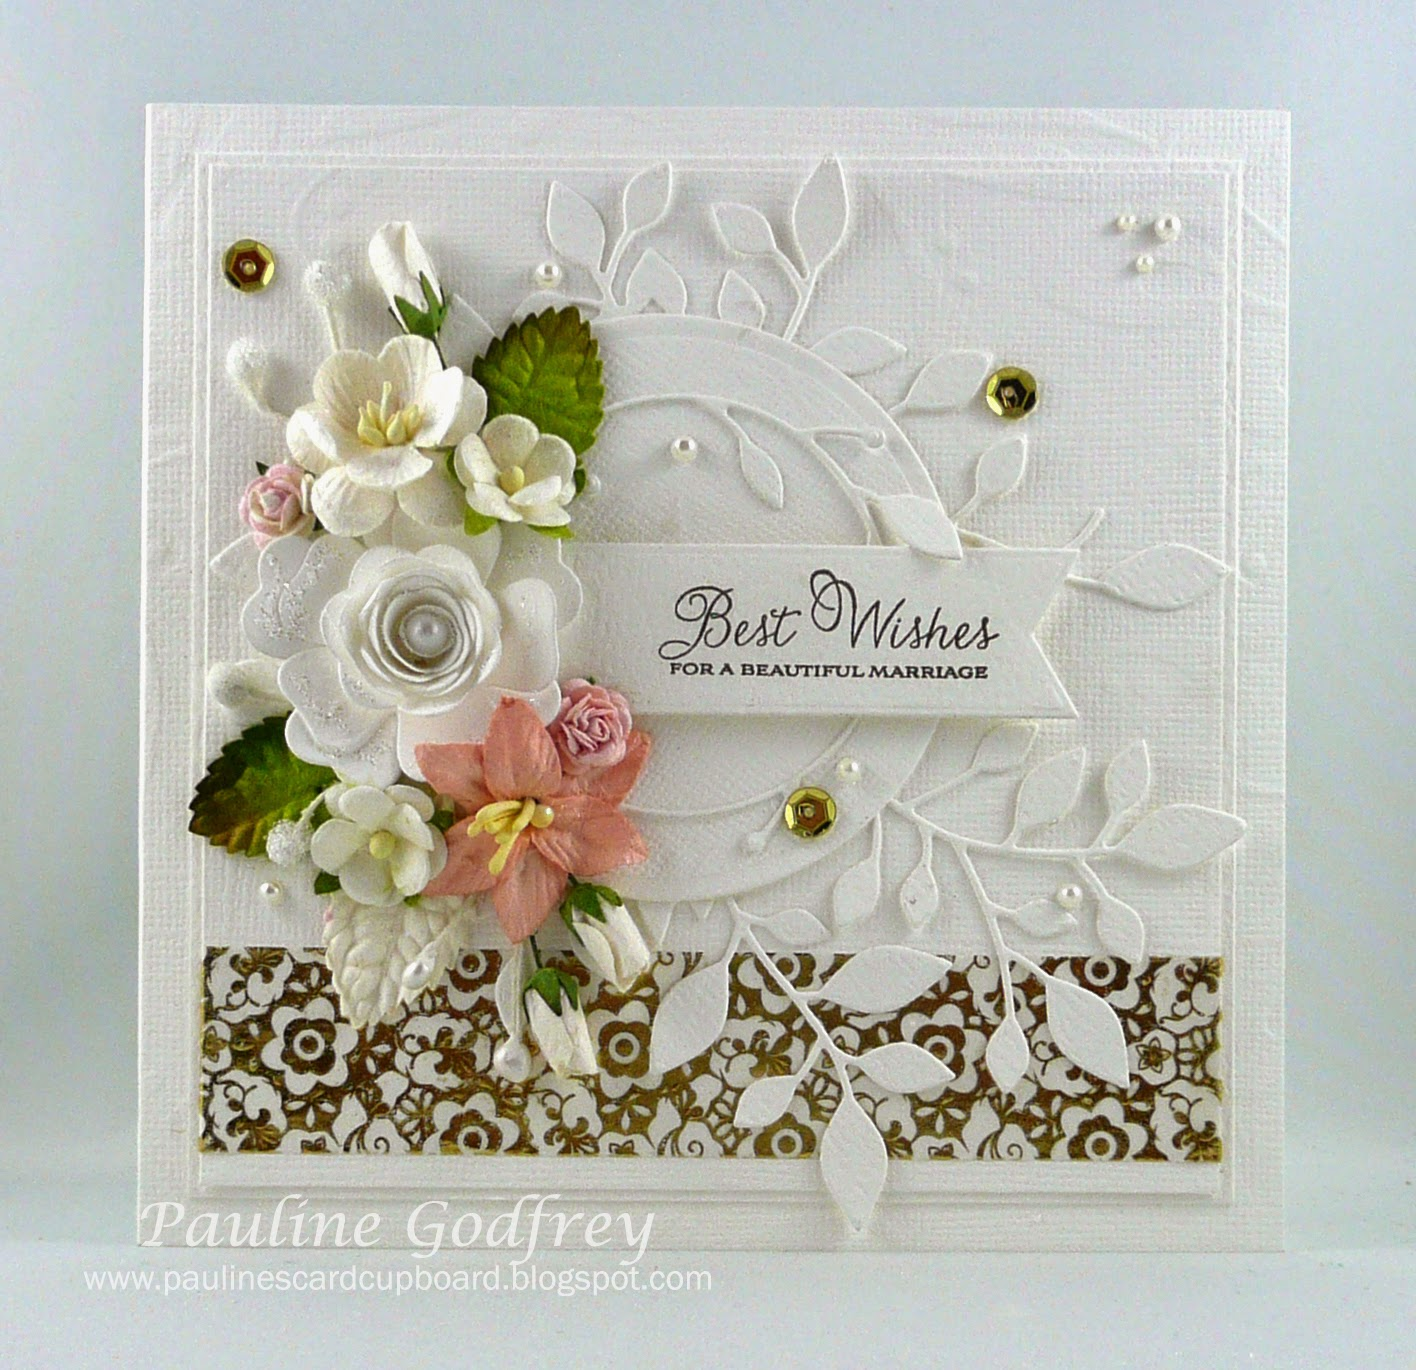 I Made For A Friends Mother In Law To Give Her Daughter On Wedding Day Love Fussing With Making Cards Them So Pretty And Elegant